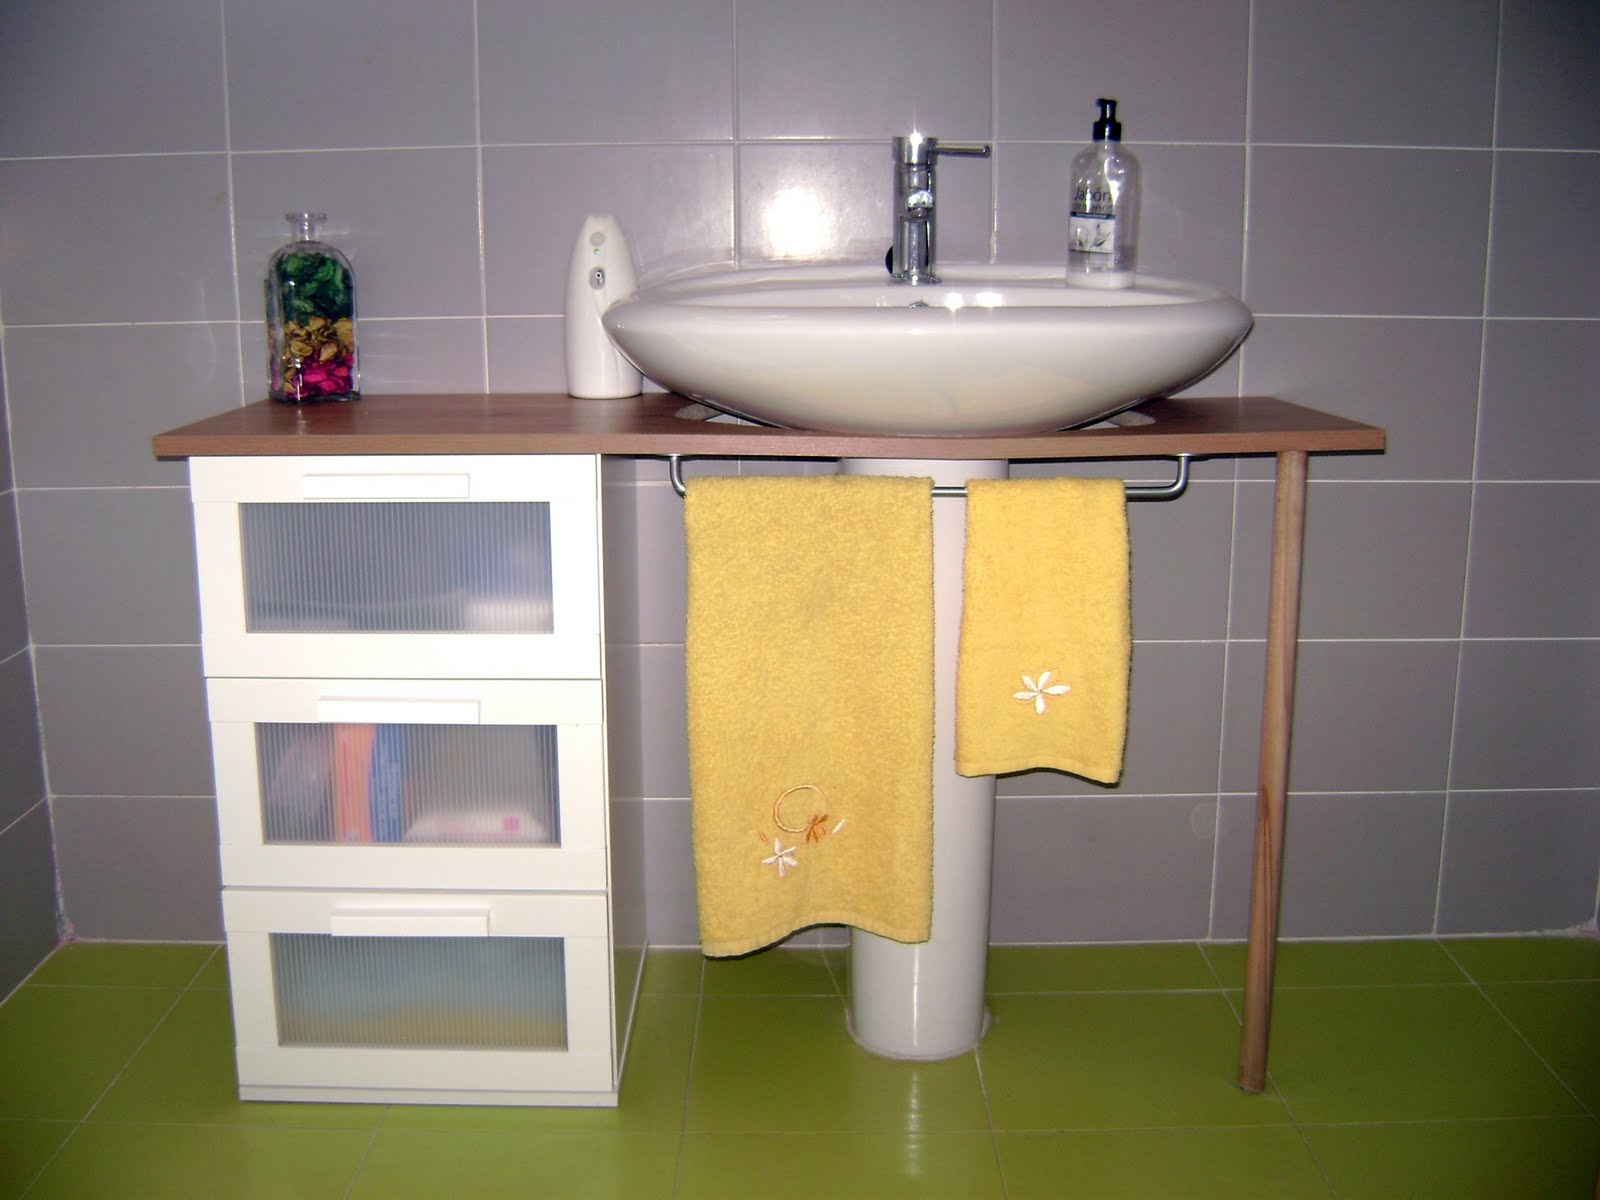 Mi casa decoracion mueble para lavabo con pie ikea for Mueble de lavabo con pie